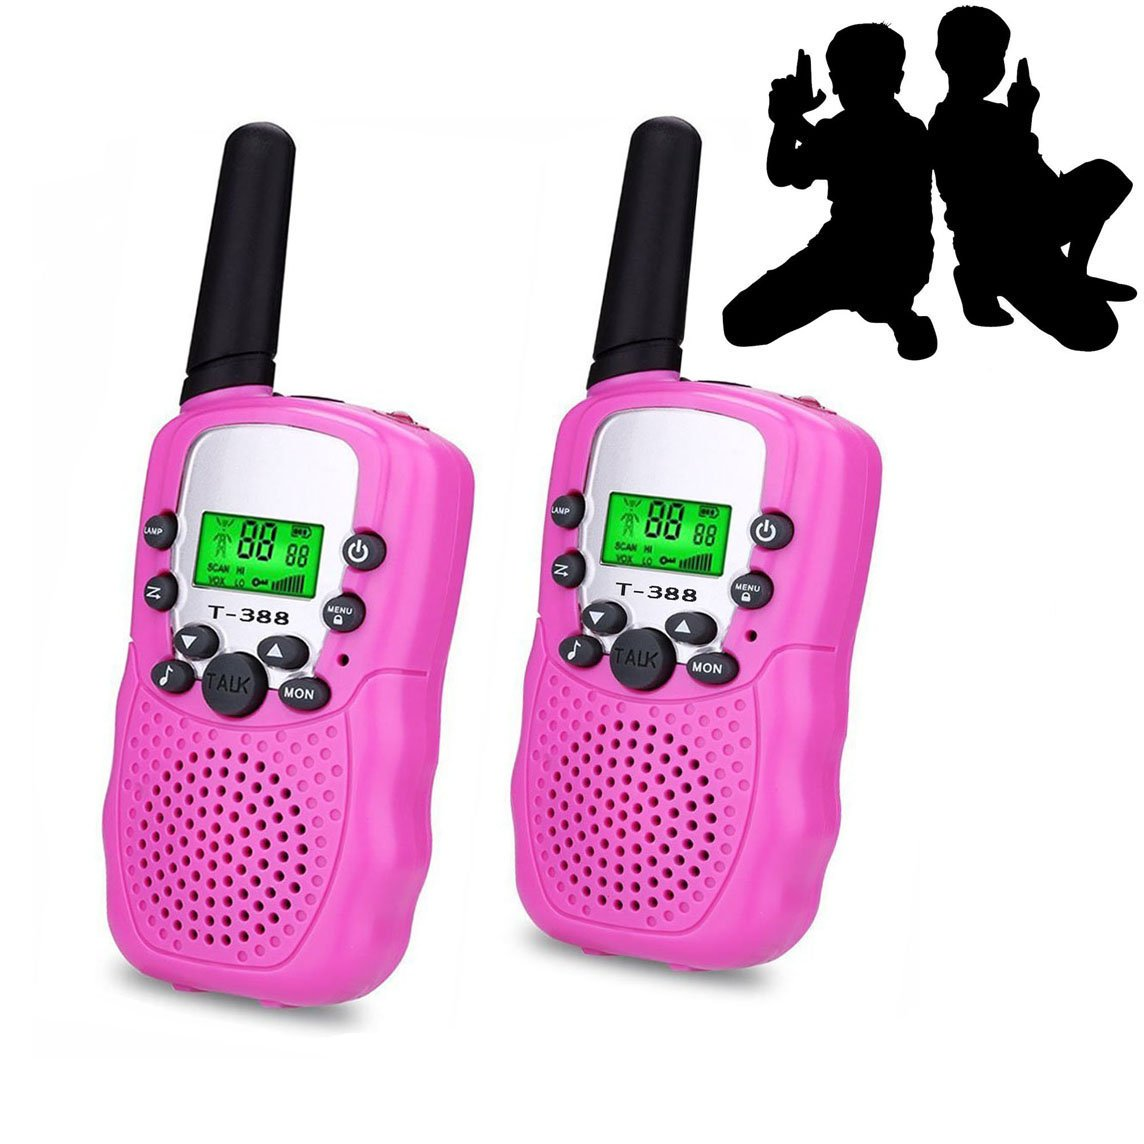 JRD&BS WINL Best Gifts for Kid,Gifts for Girl 8 Year Old, Walkie Talkies for Kid,Cool Toys for 4-5 Year Old Boys,1 Parir (Pink)